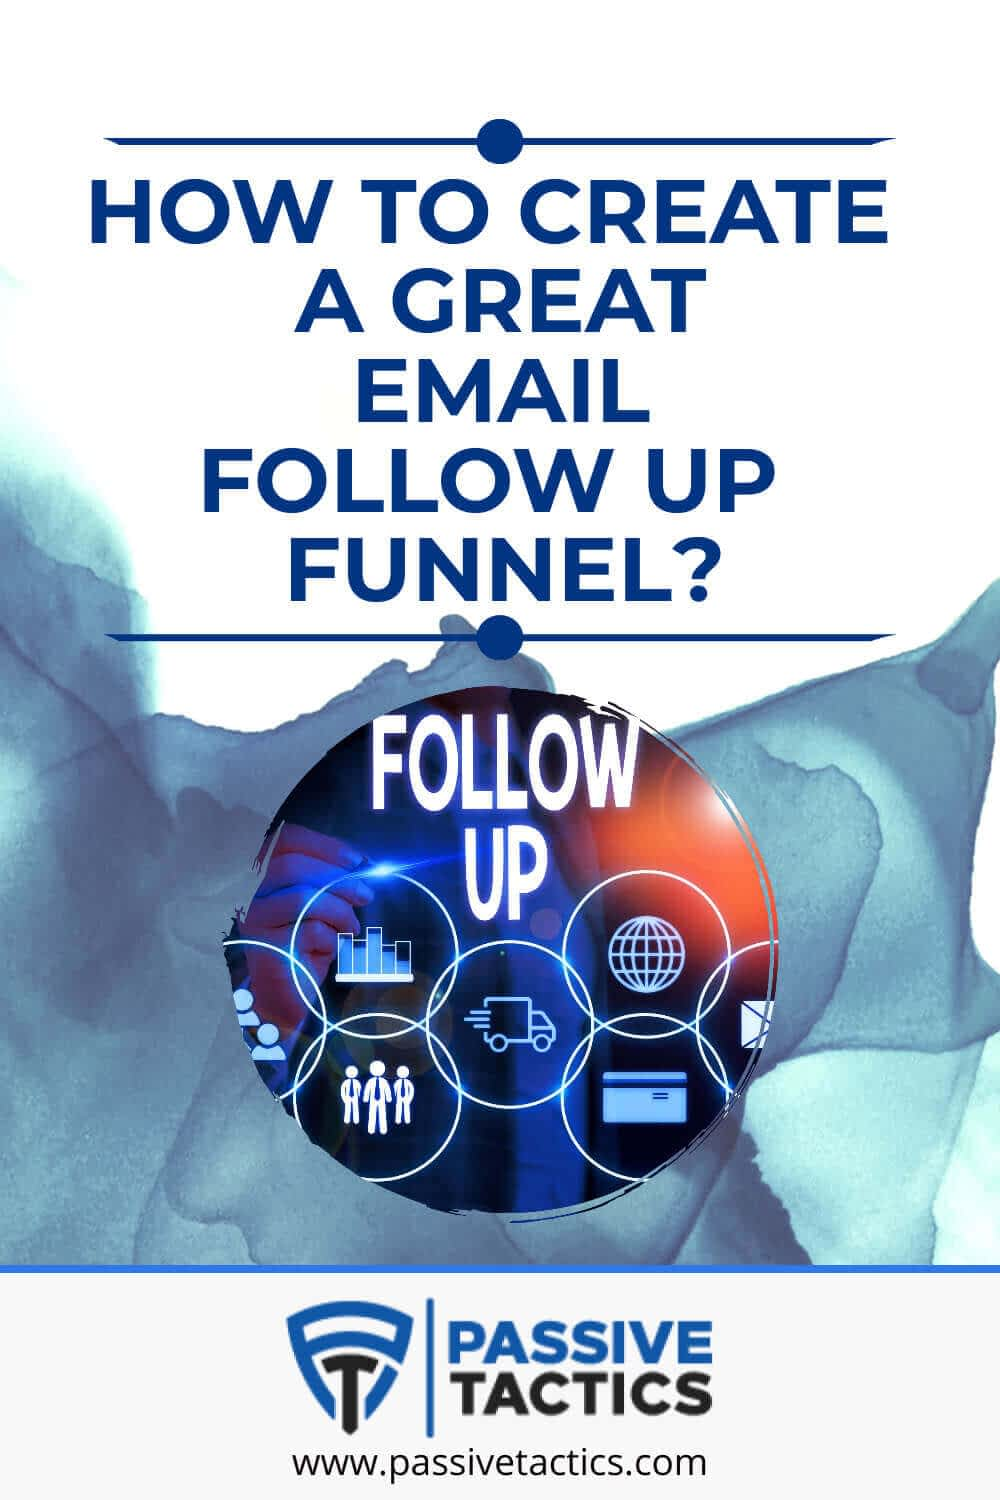 How To Create A Great Email Follow Up Funnel?